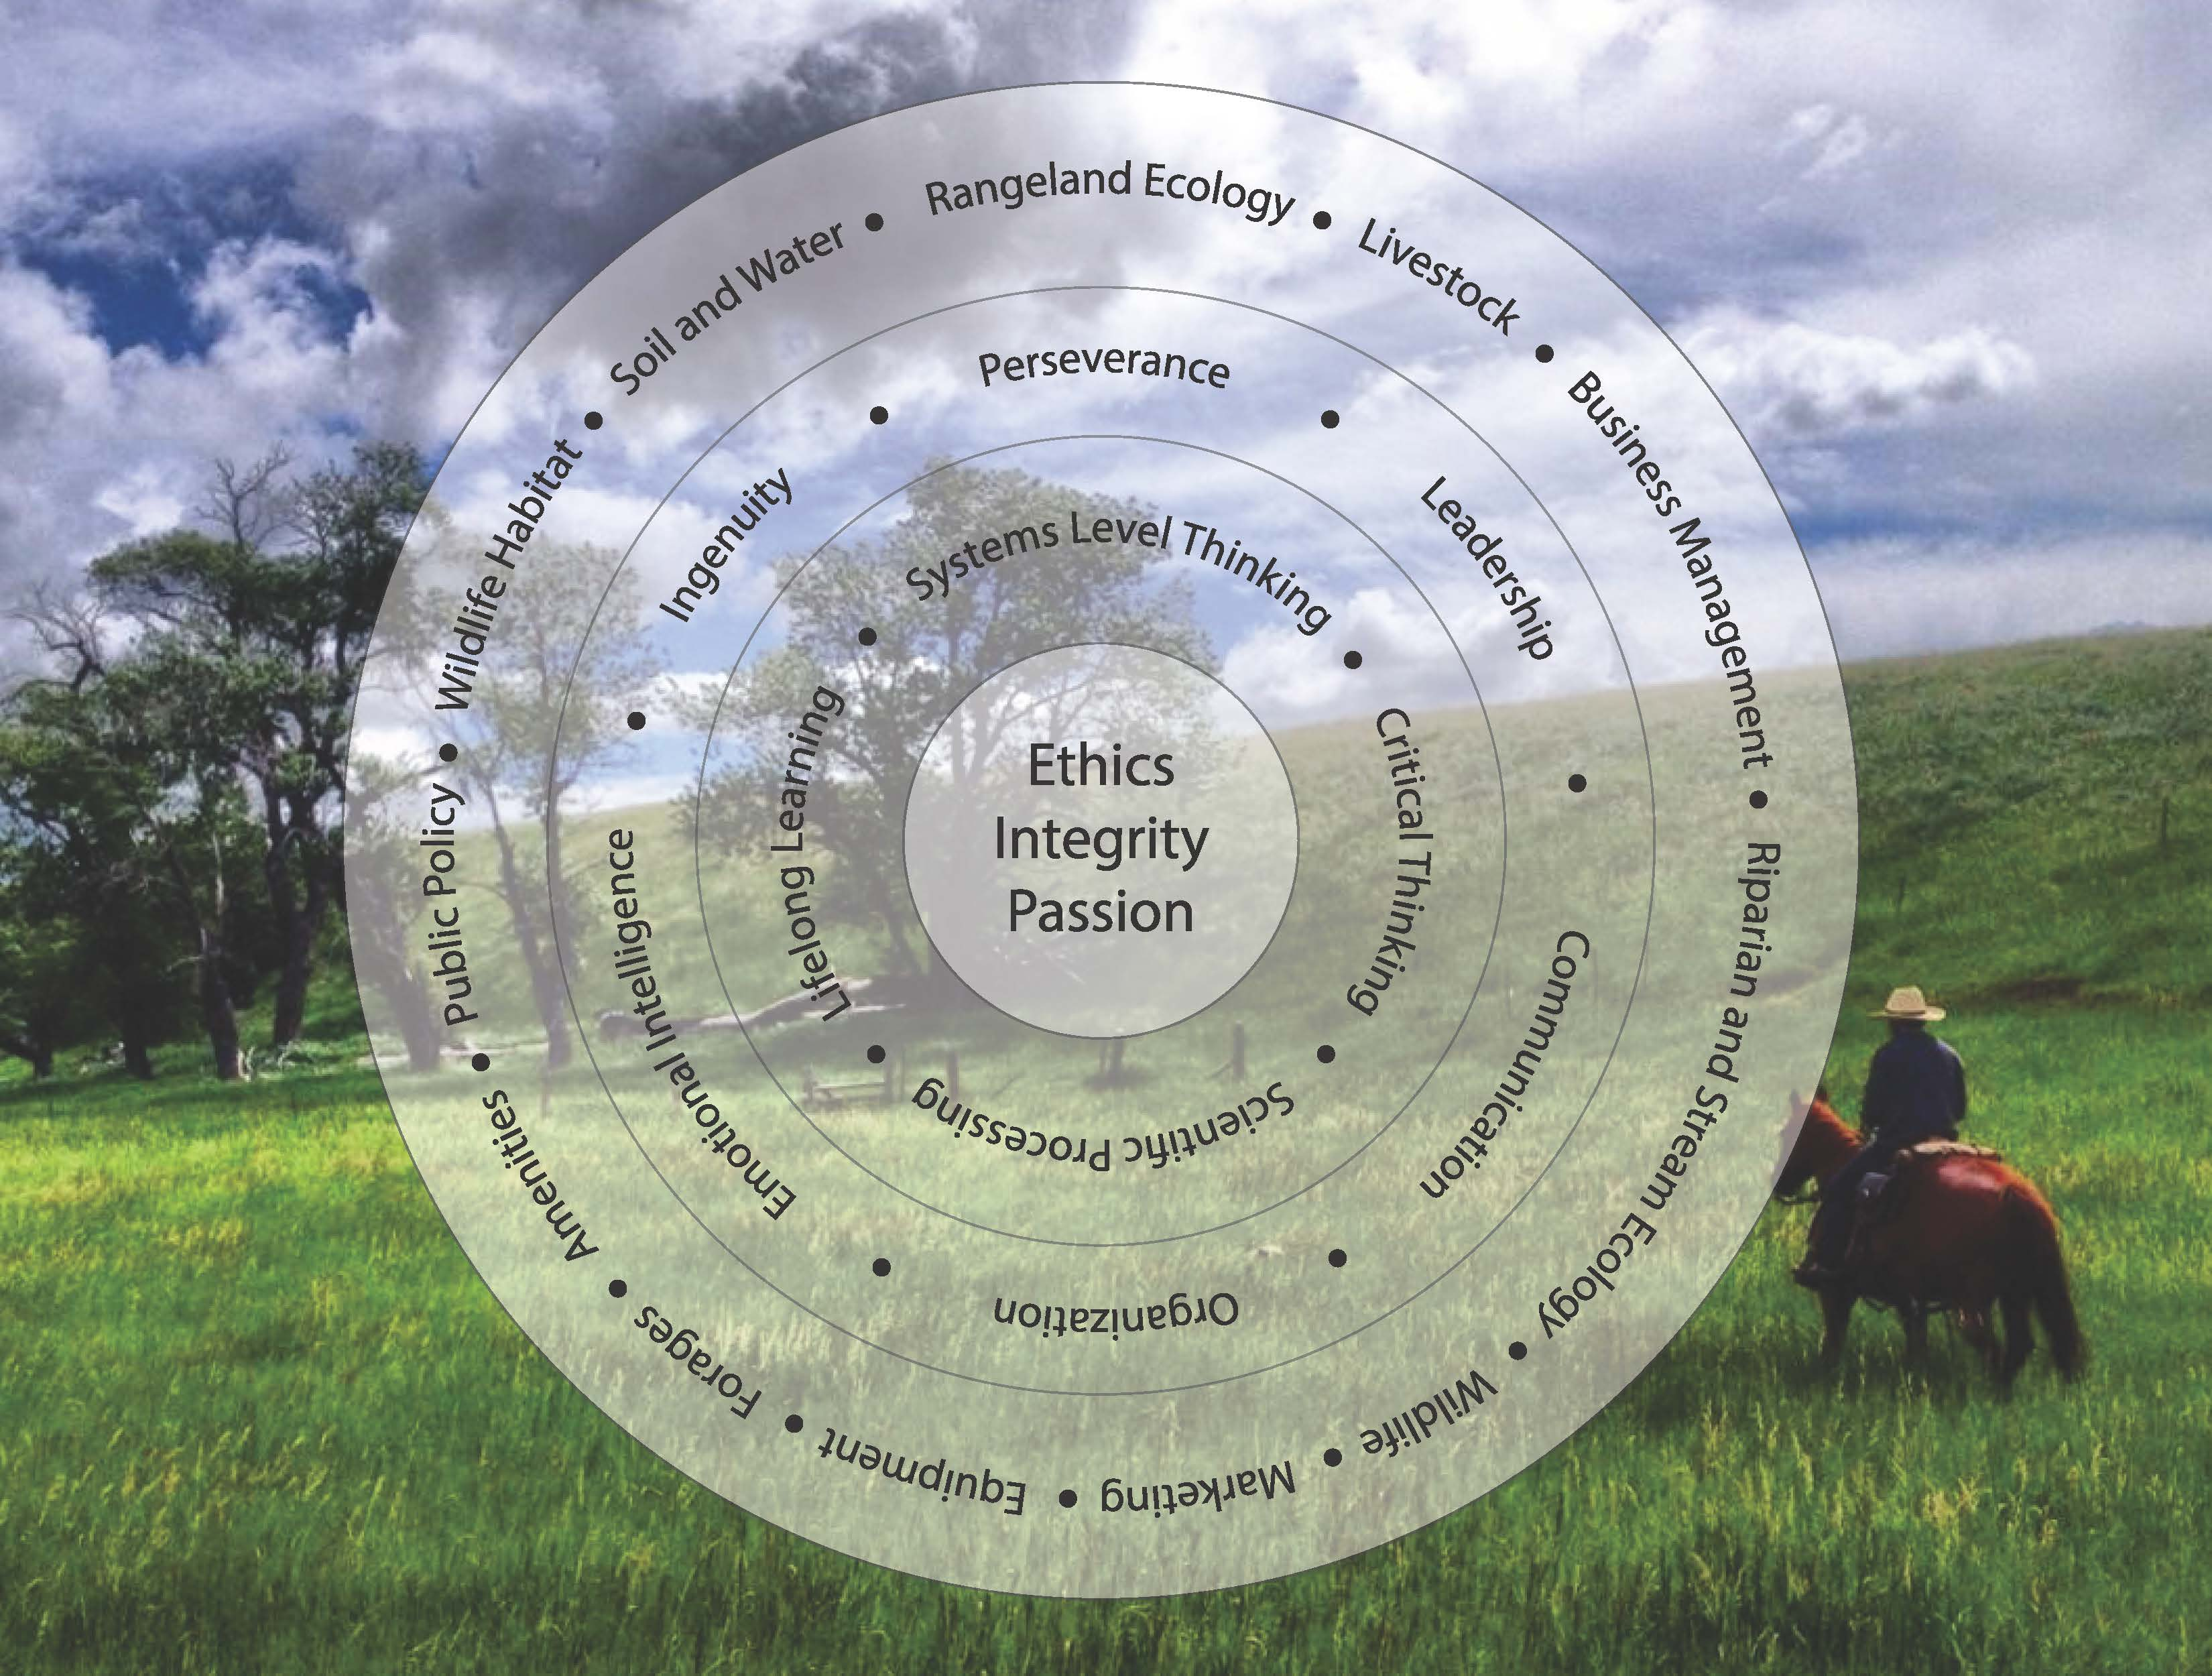 A circular chart of the ranch managment program showing the progression from the outer circle to reach the inner circl of ethics, integrity and passion.